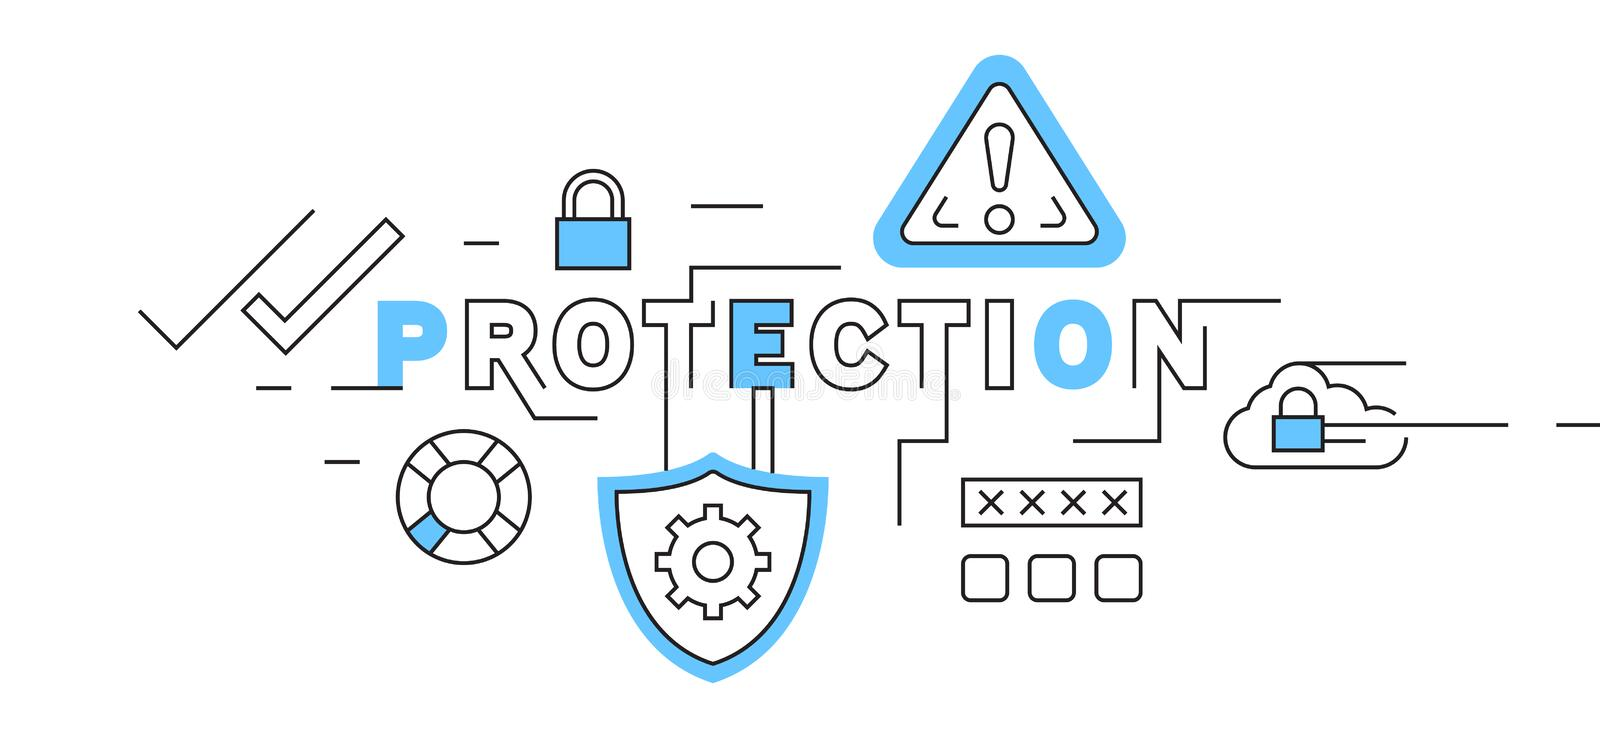 Protection Flat Line Design In Blue. system security and data safety illustration. business and technology theme vector. System security and data safety vector illustration